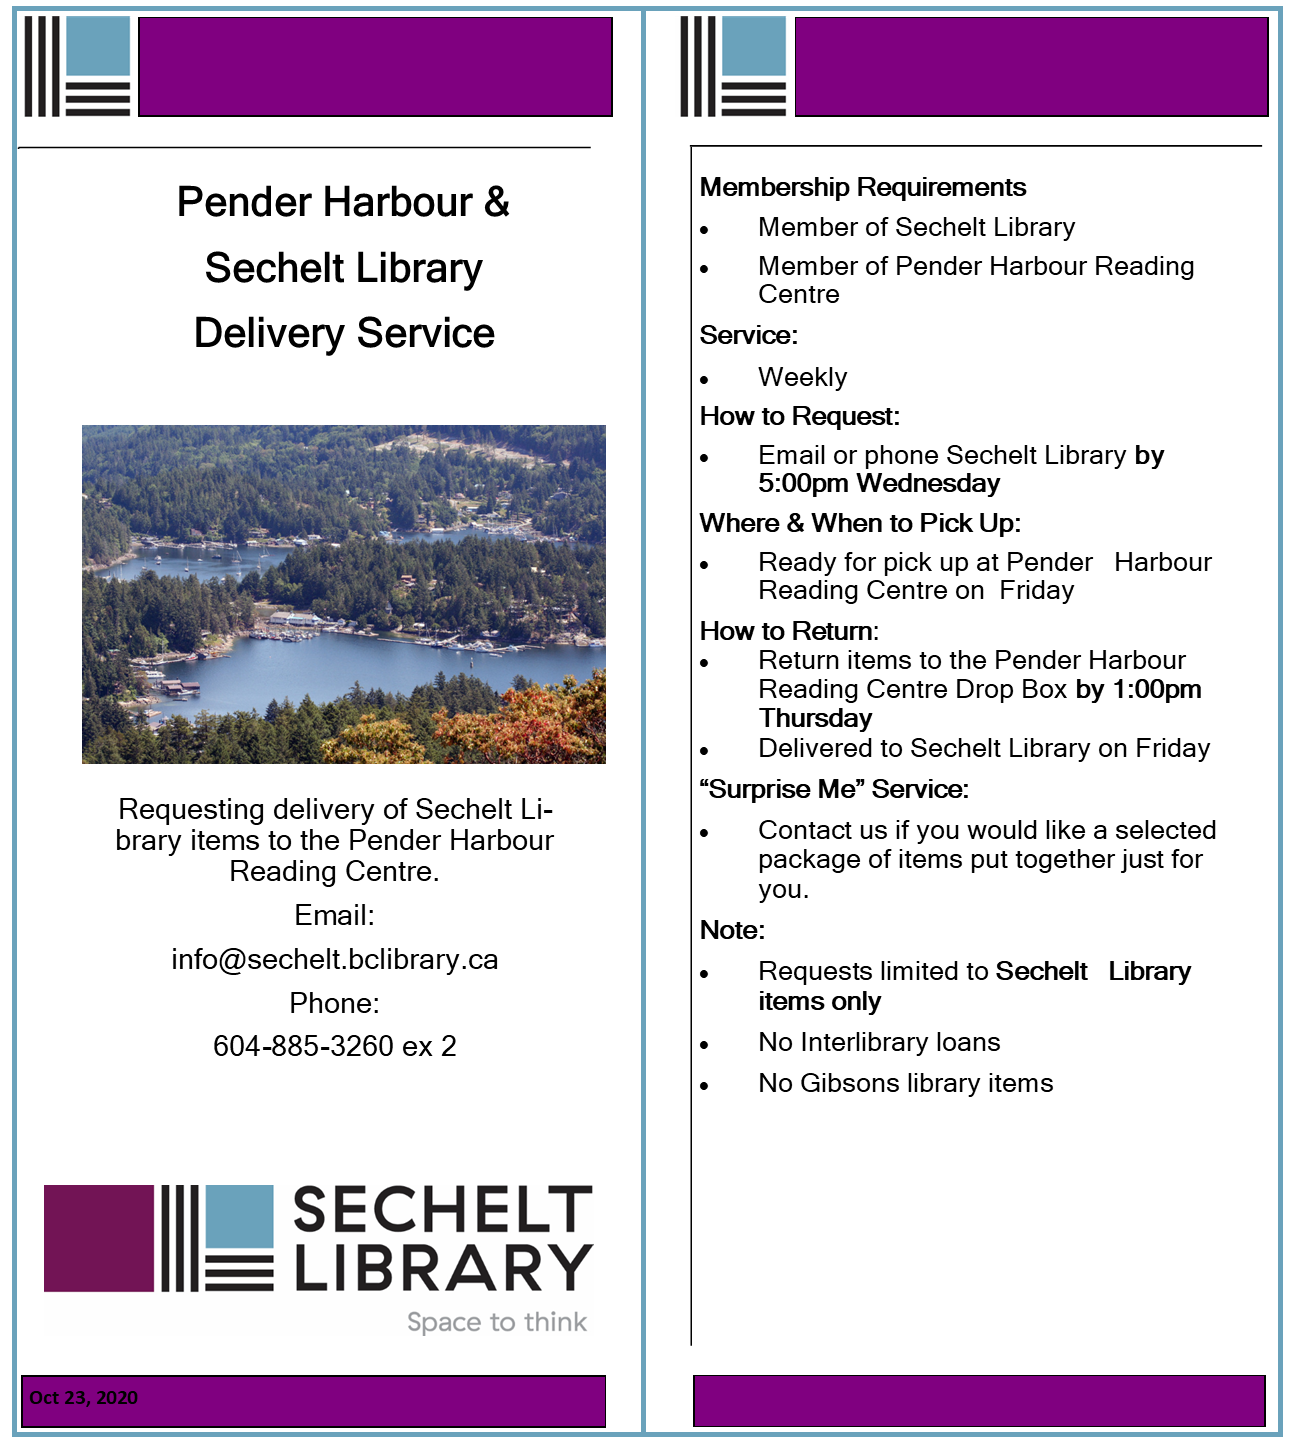 Pender Harbour & Sechelt Library Delivery Service